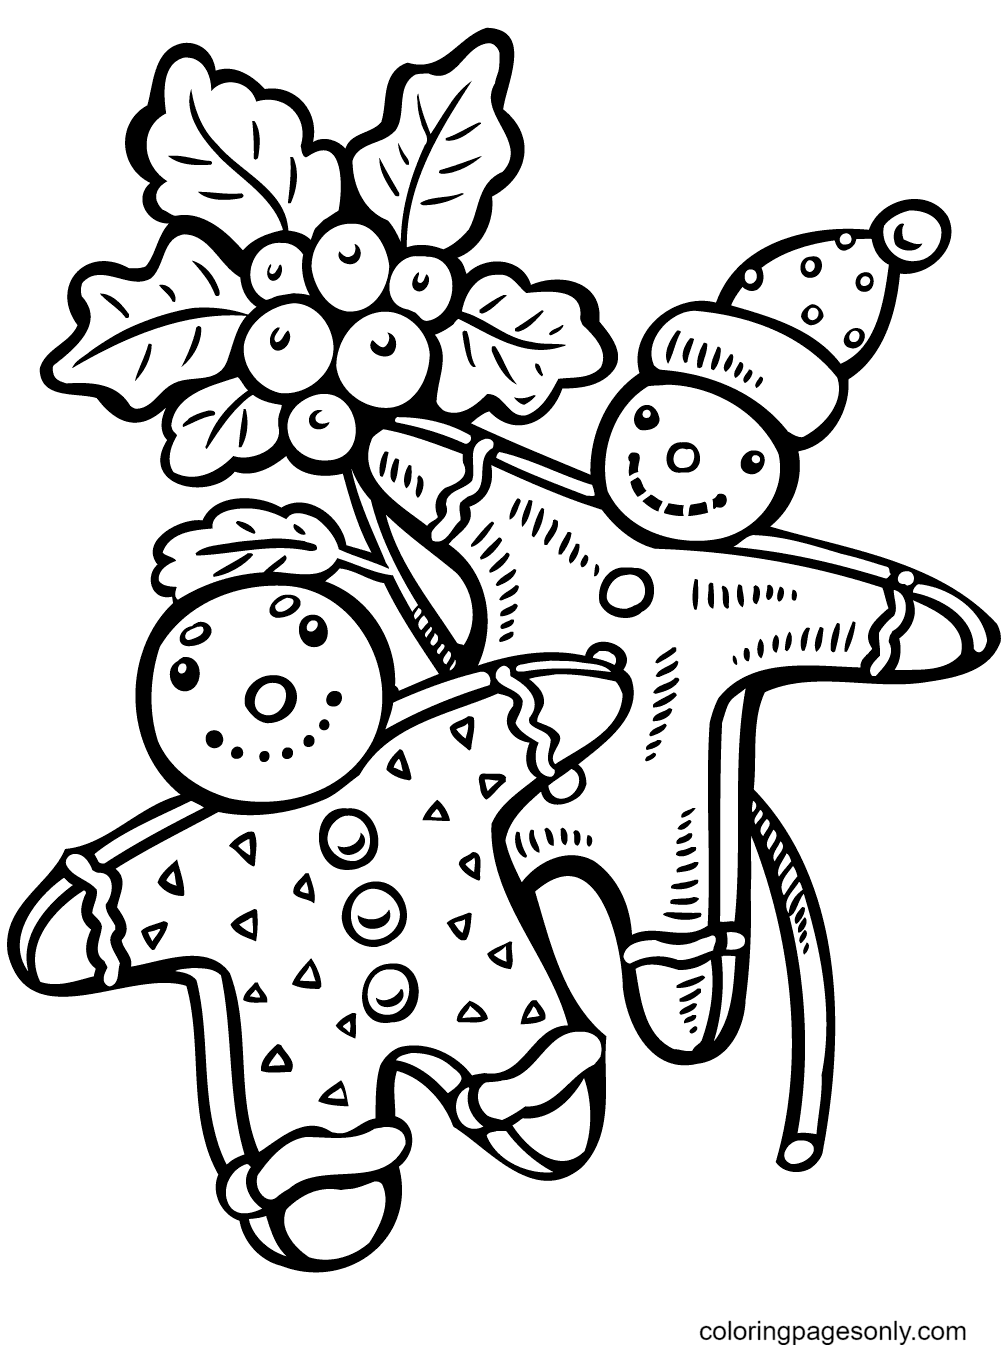 Gingerbread Man In Christmas Day Coloring Page